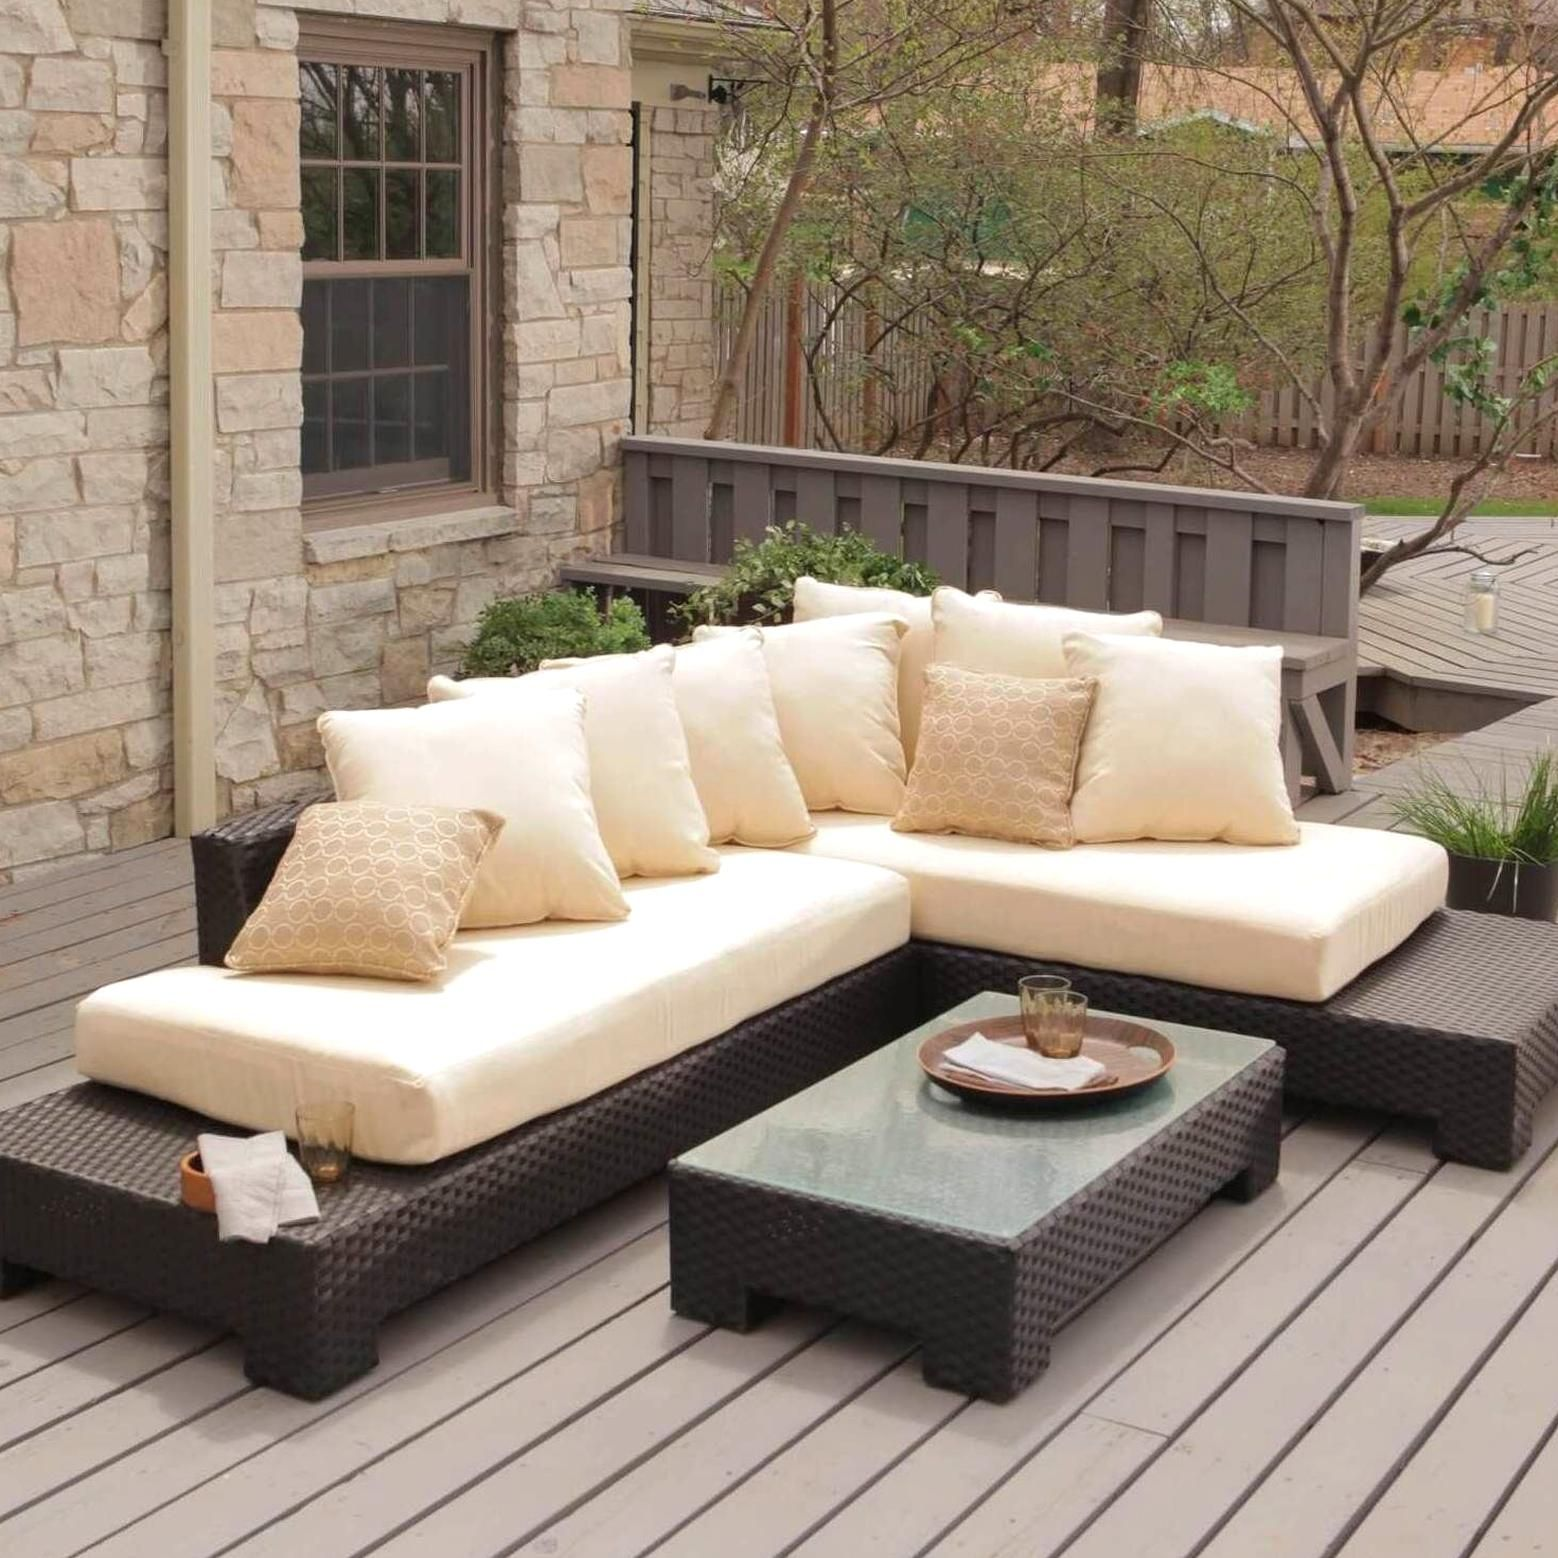 L Shaped Outdoor Couch Cushions L Shaped Outdoor Couch Cushions Please Click Link In 2020 Modern Patio Furniture Comfortable Patio Furniture Patio Furniture Sets